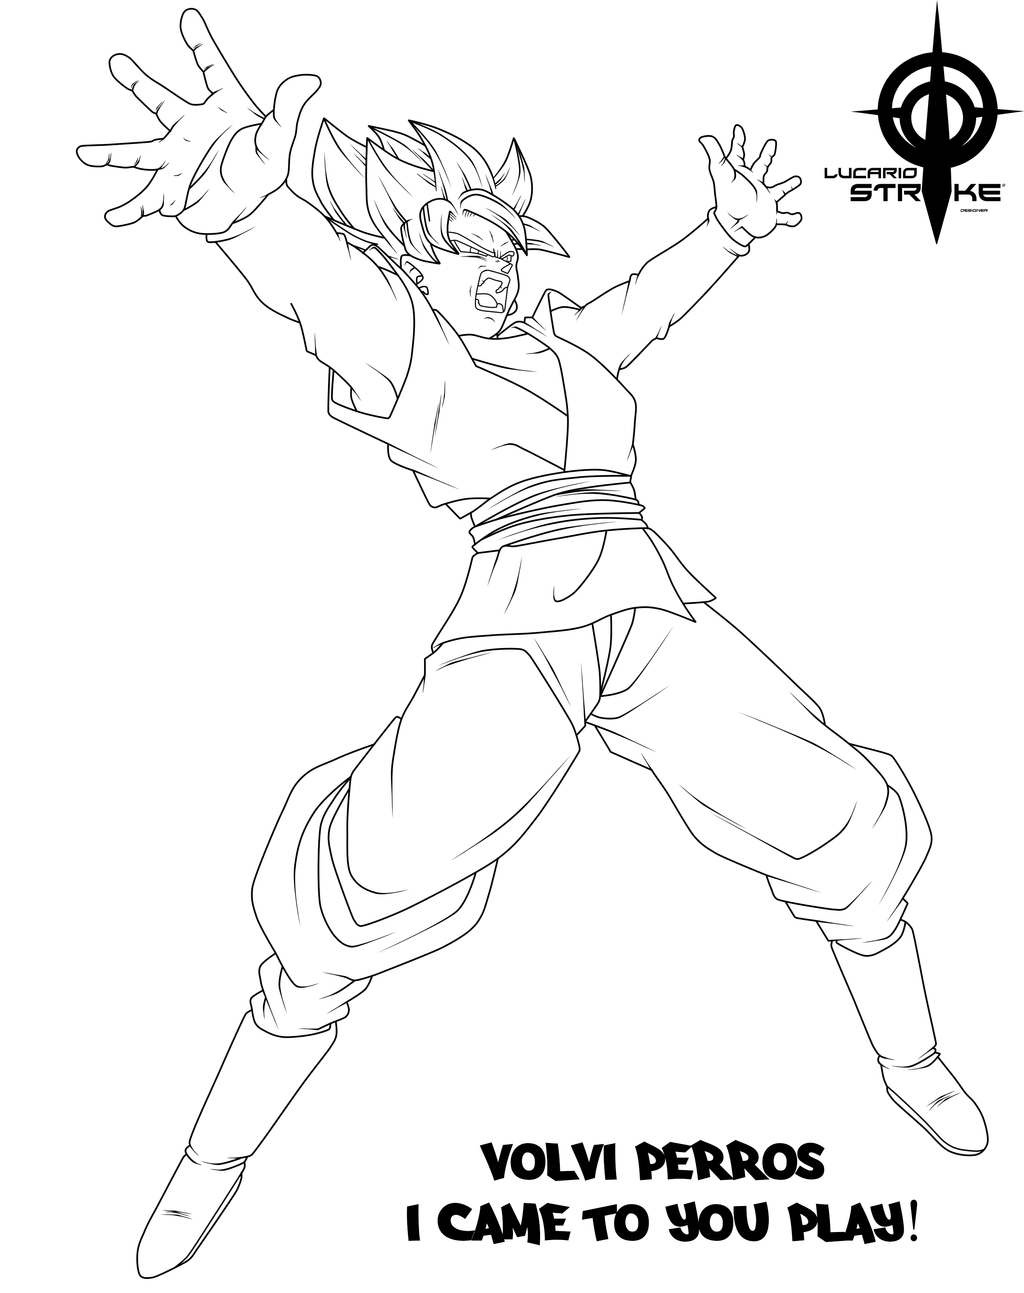 Lucario Strike 58 4 BLACK GOKU LINEART I CAME TO YOU PLAY PERROS By